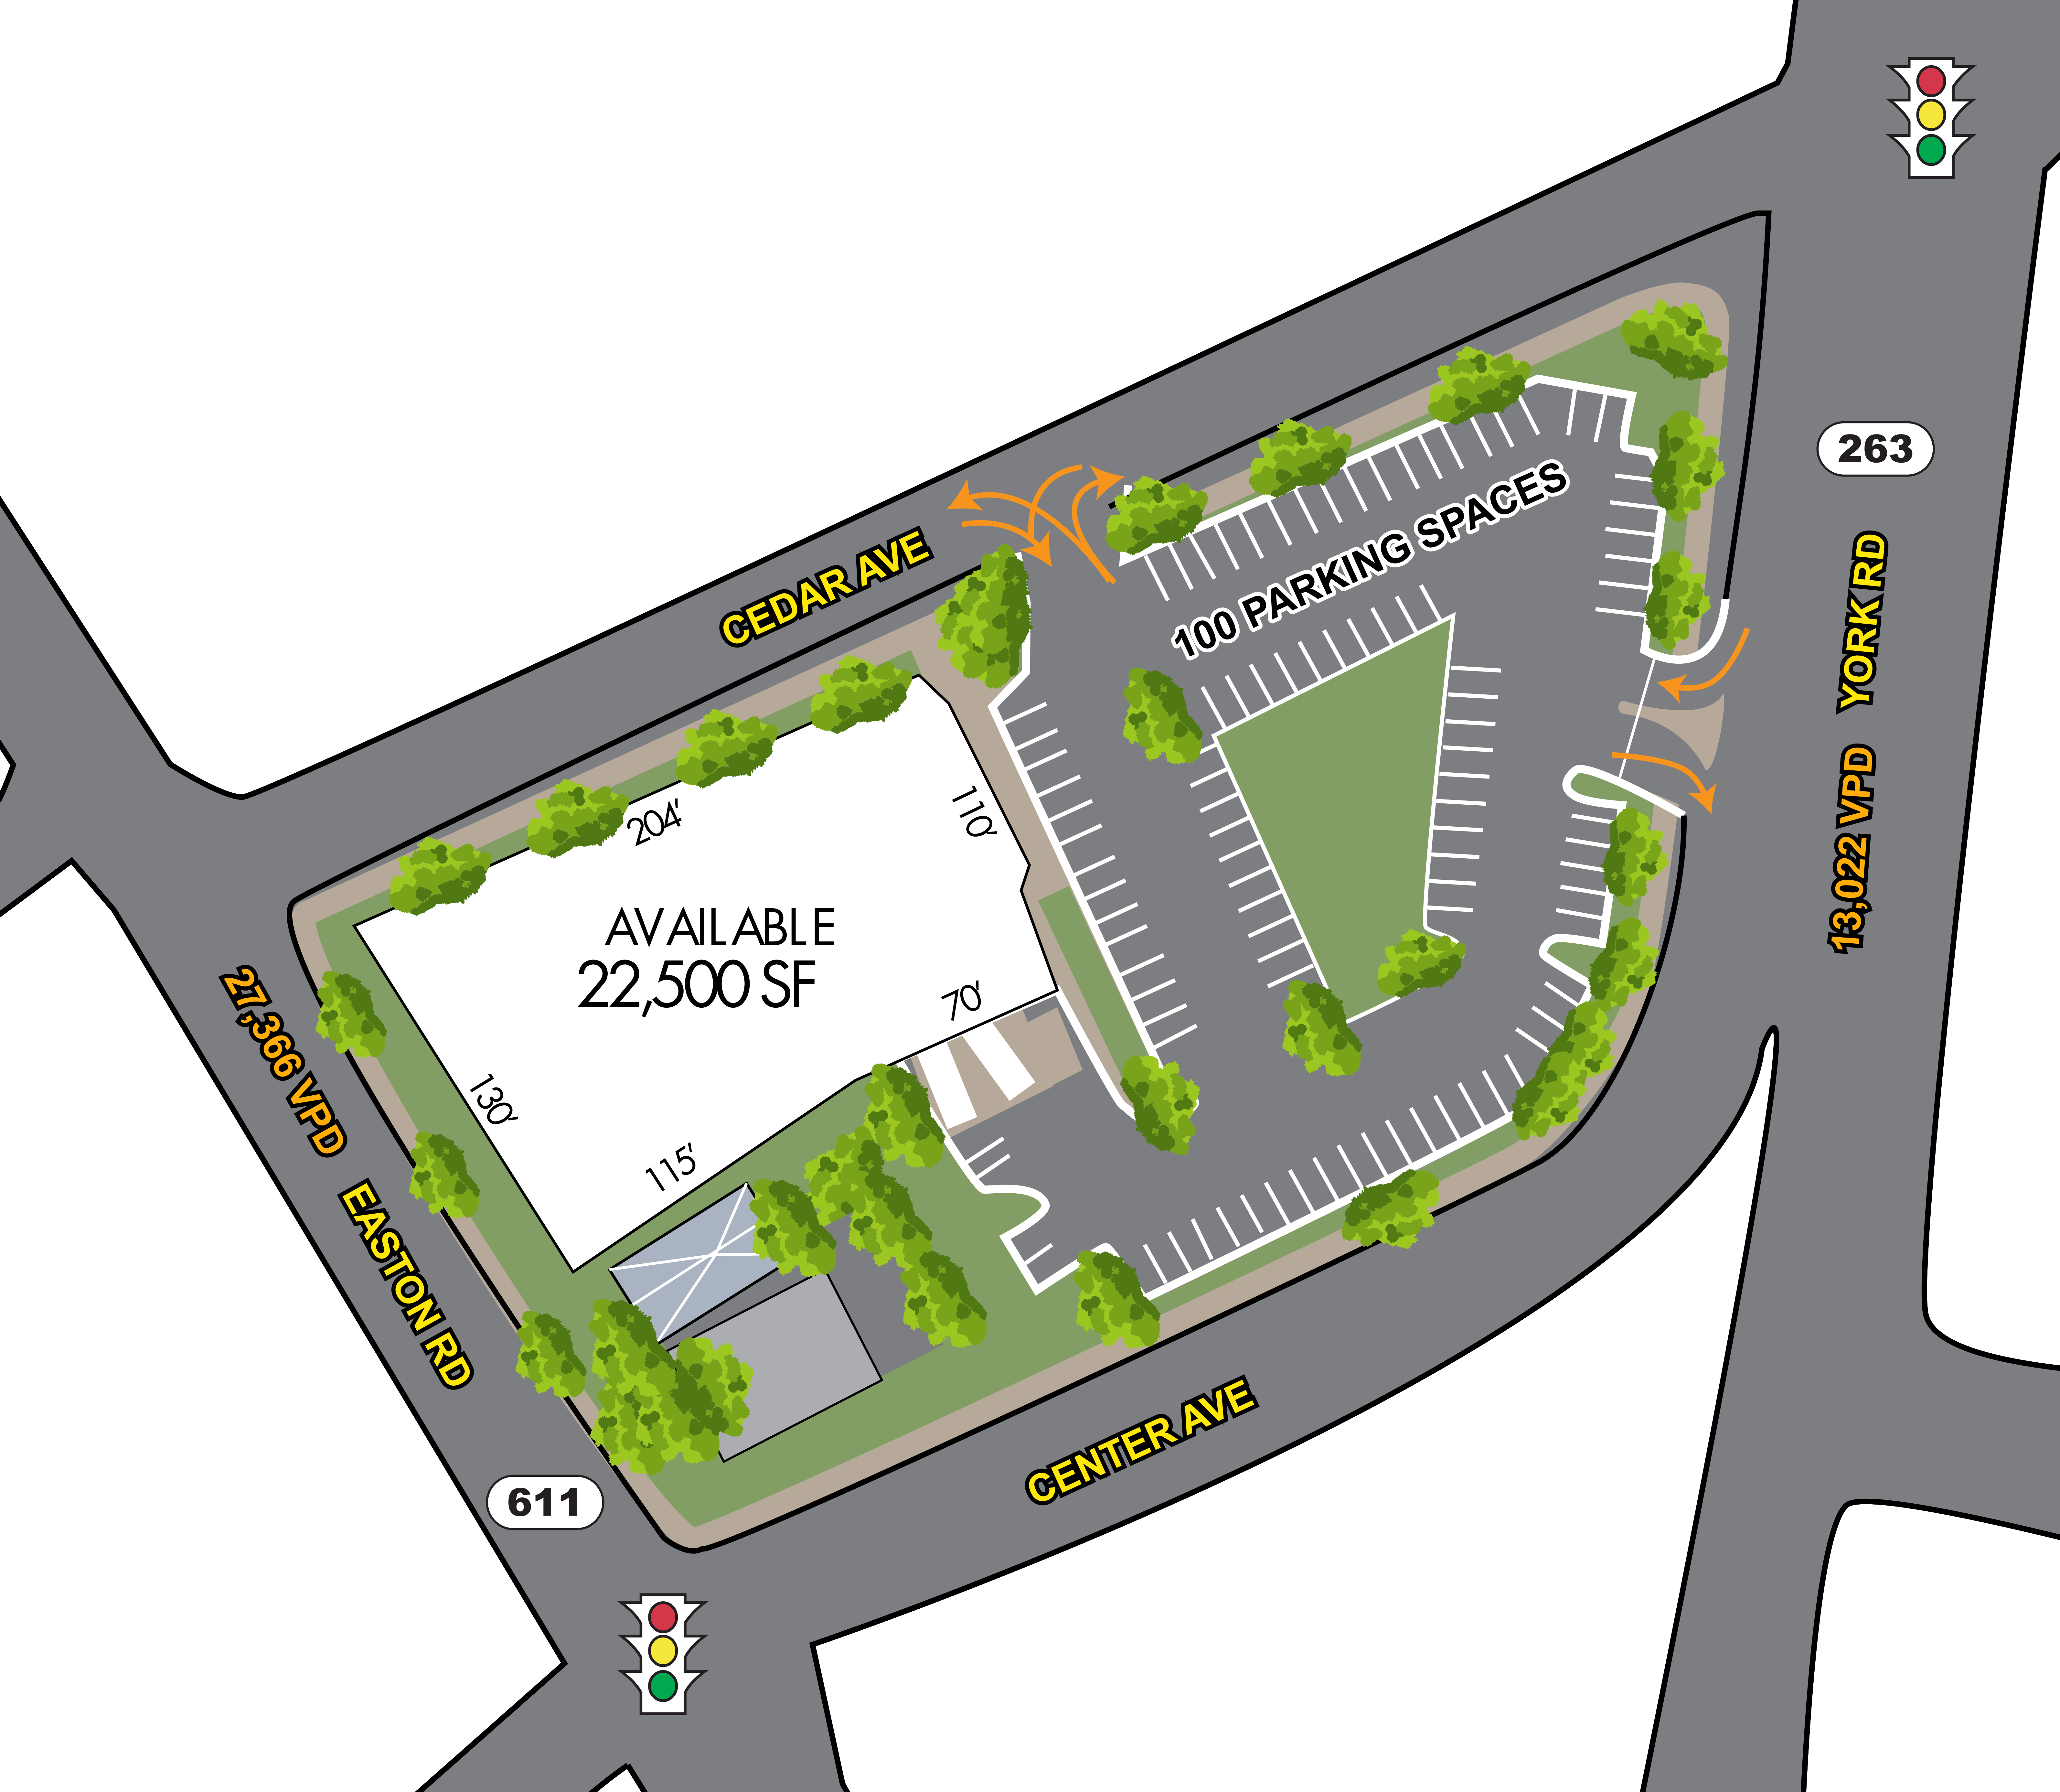 Willow Grove, PA - Freestanding Retail Building: site plan